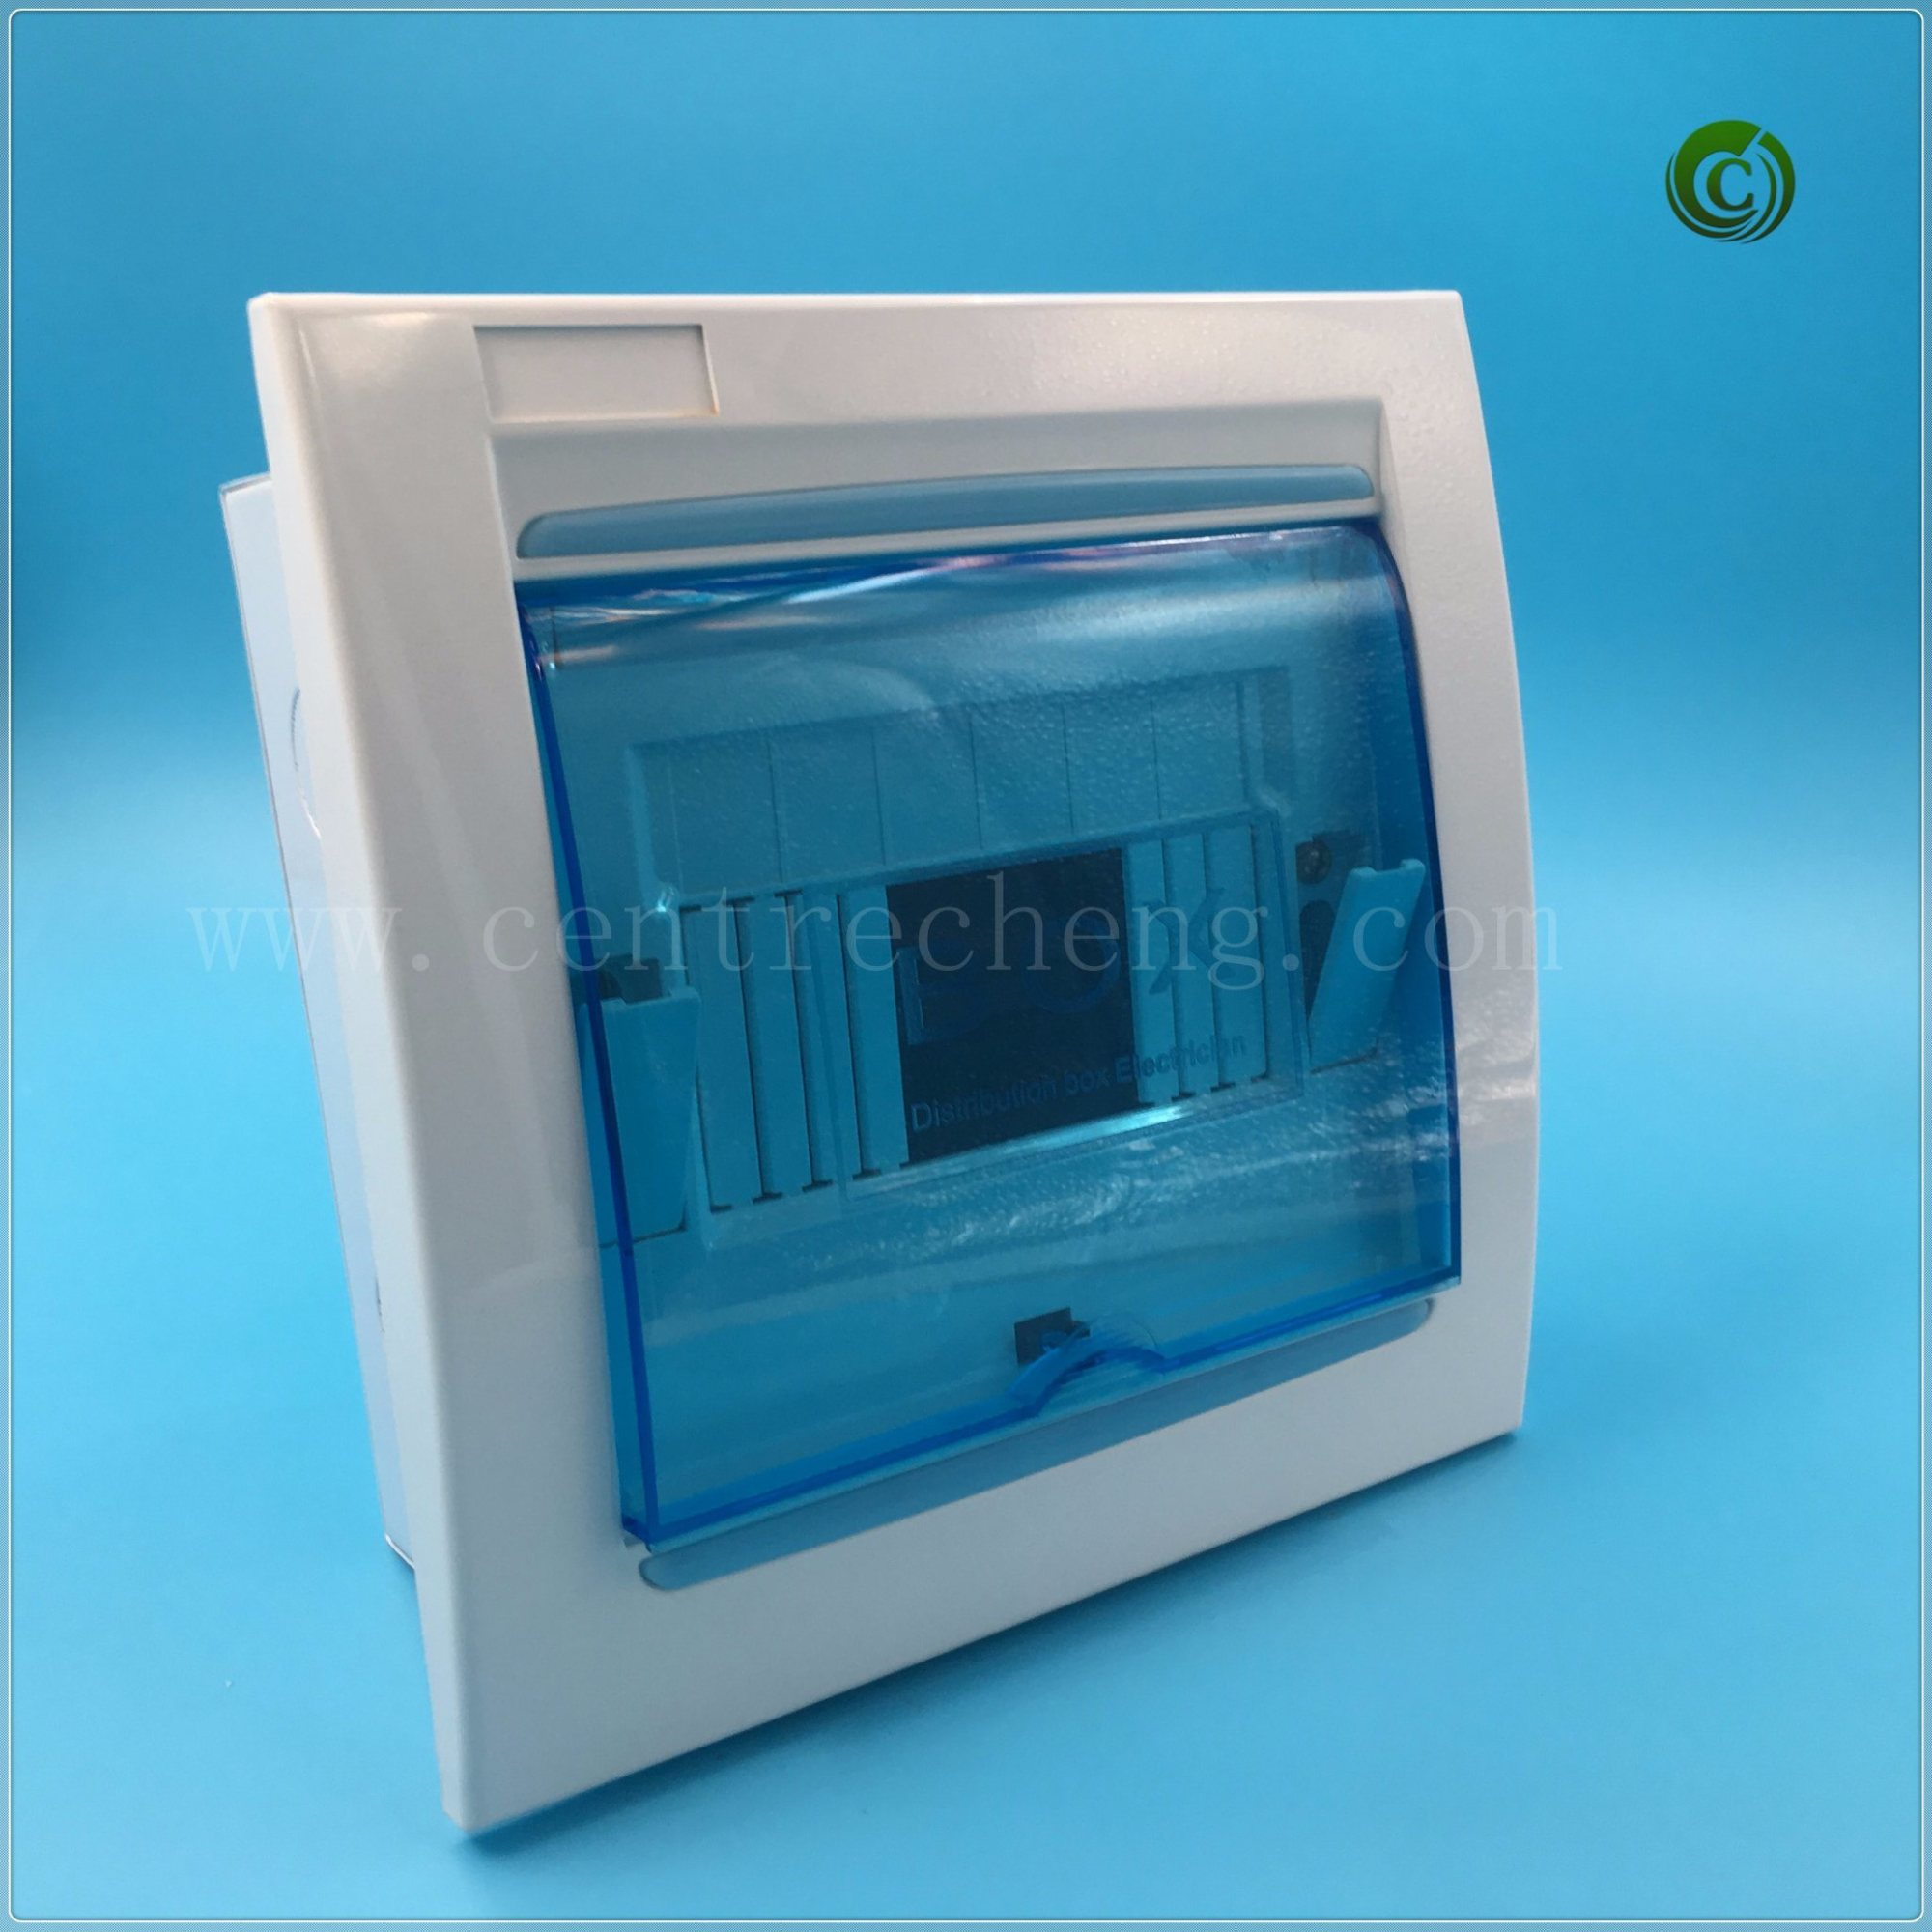 hight resolution of 2018 ip home mcb fuse box 4 6 way electric distribution board electrical box